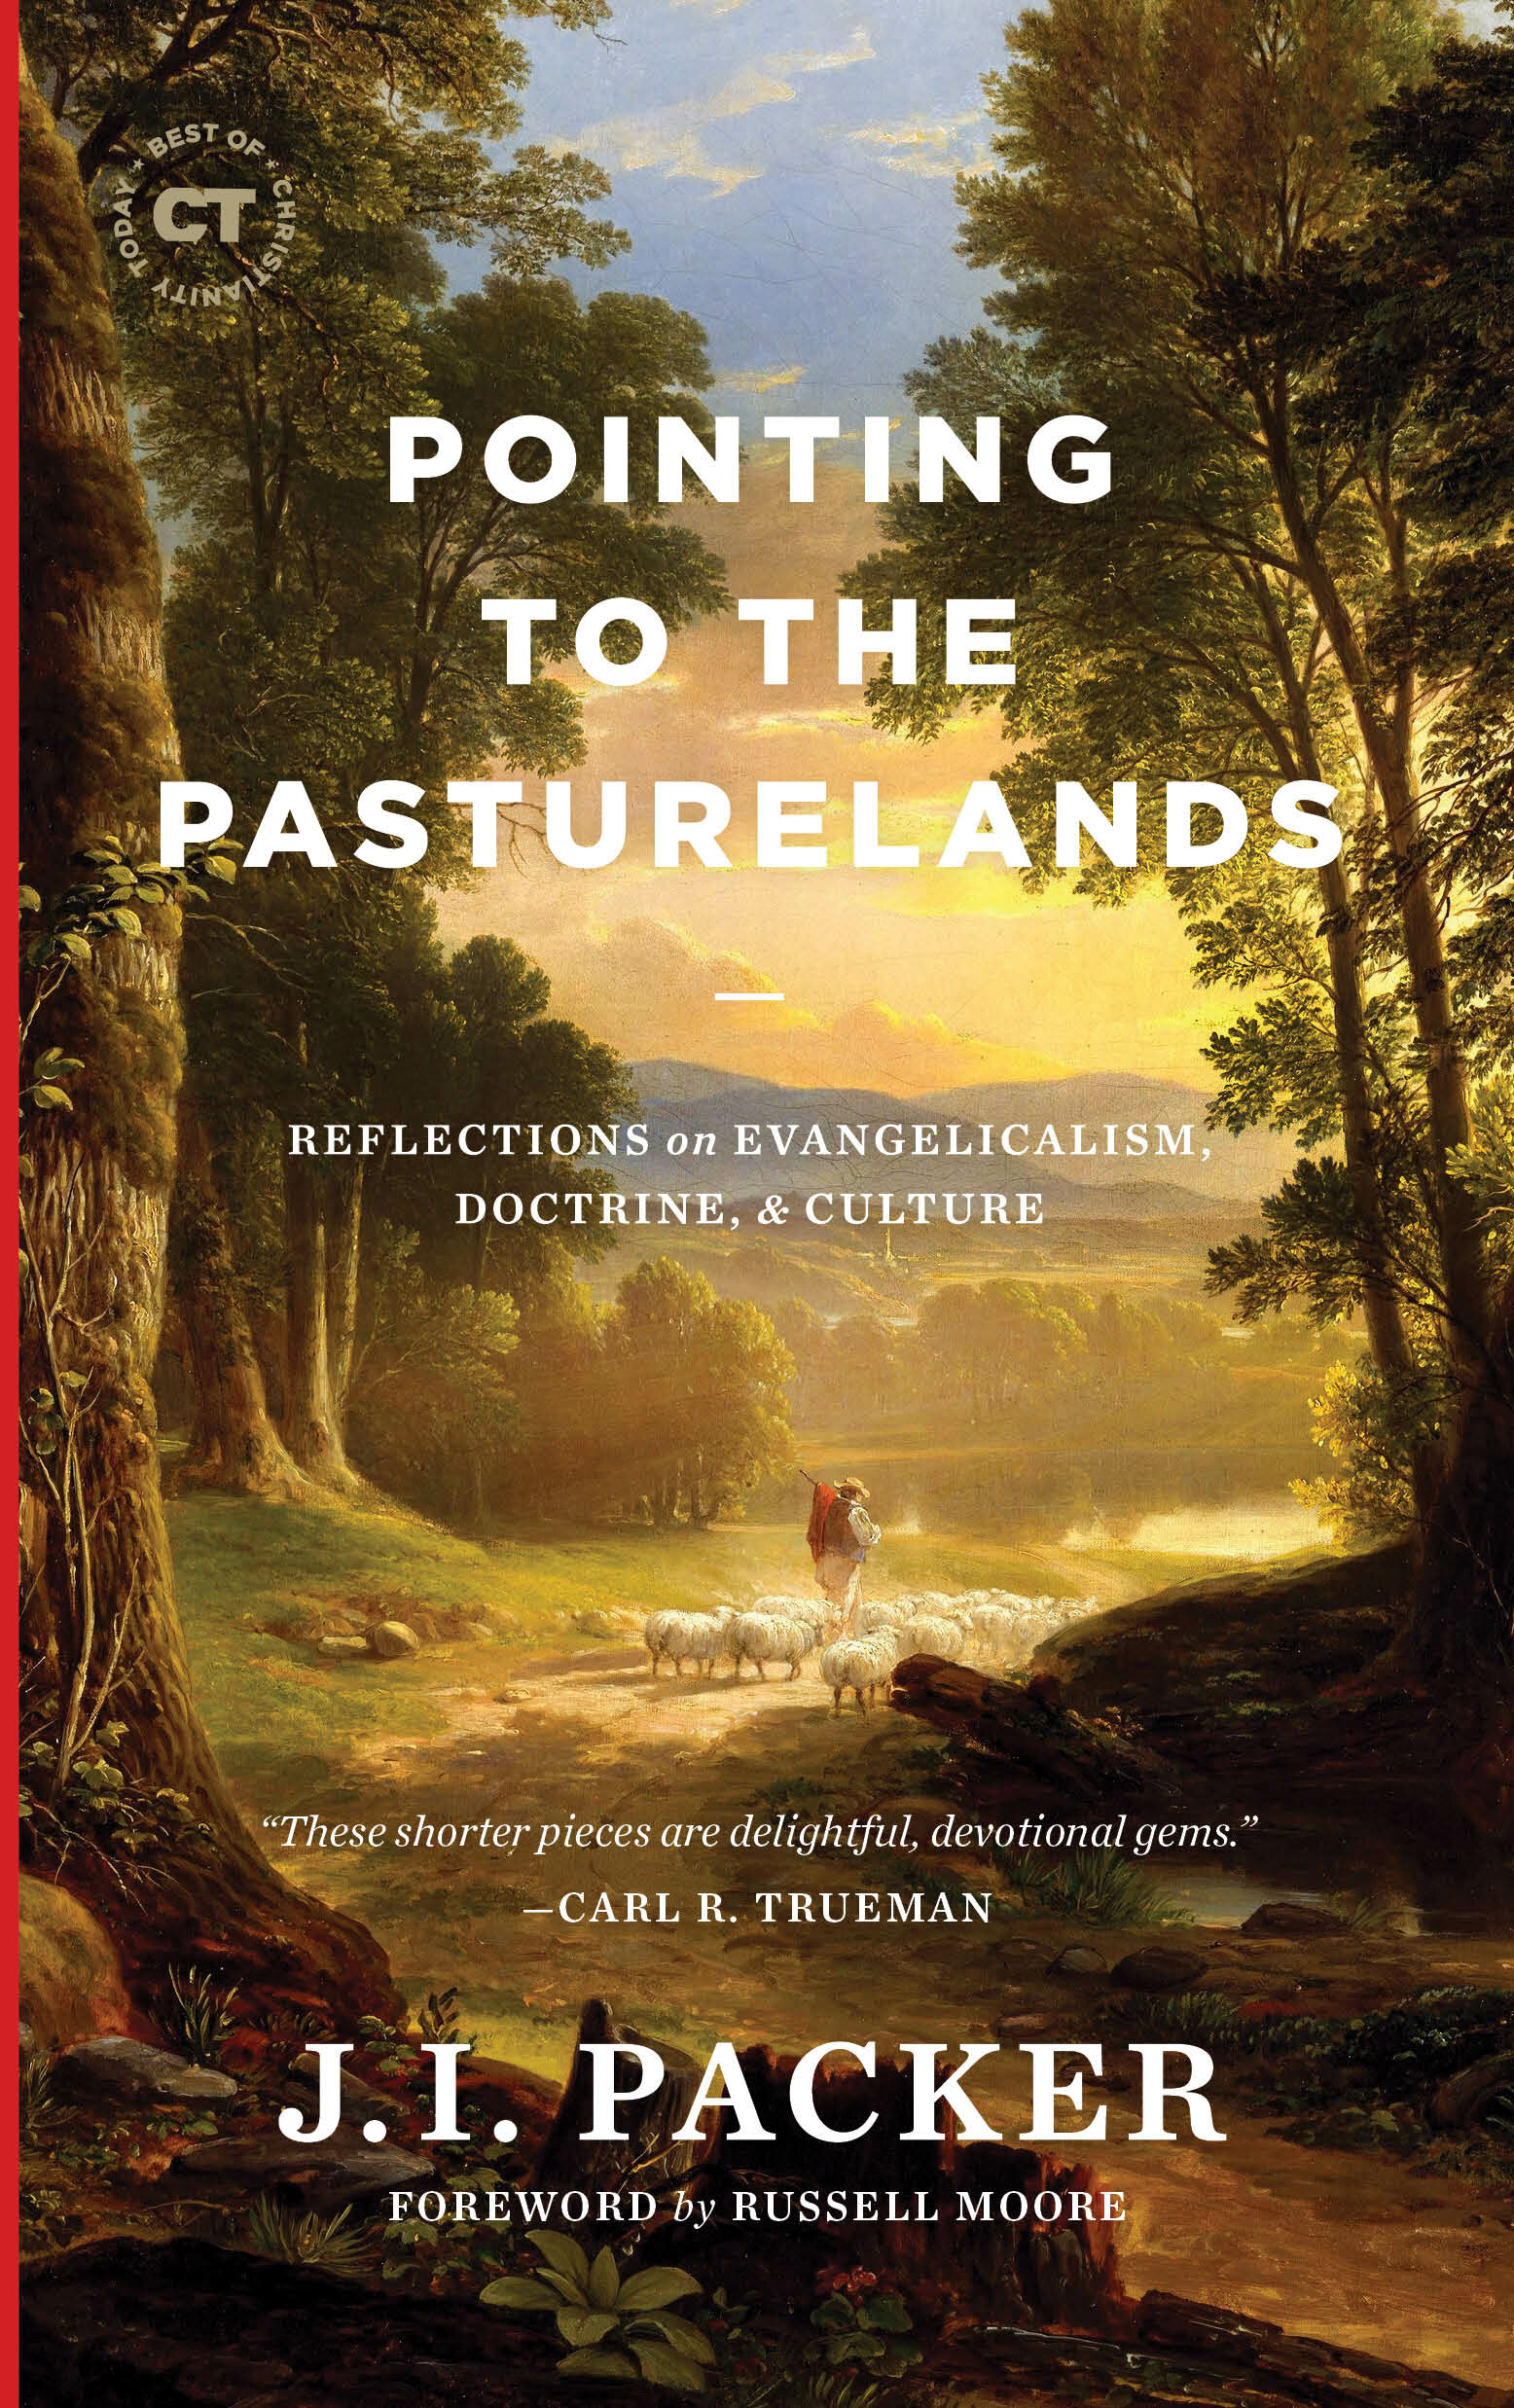 Pointing to the Pasturelands